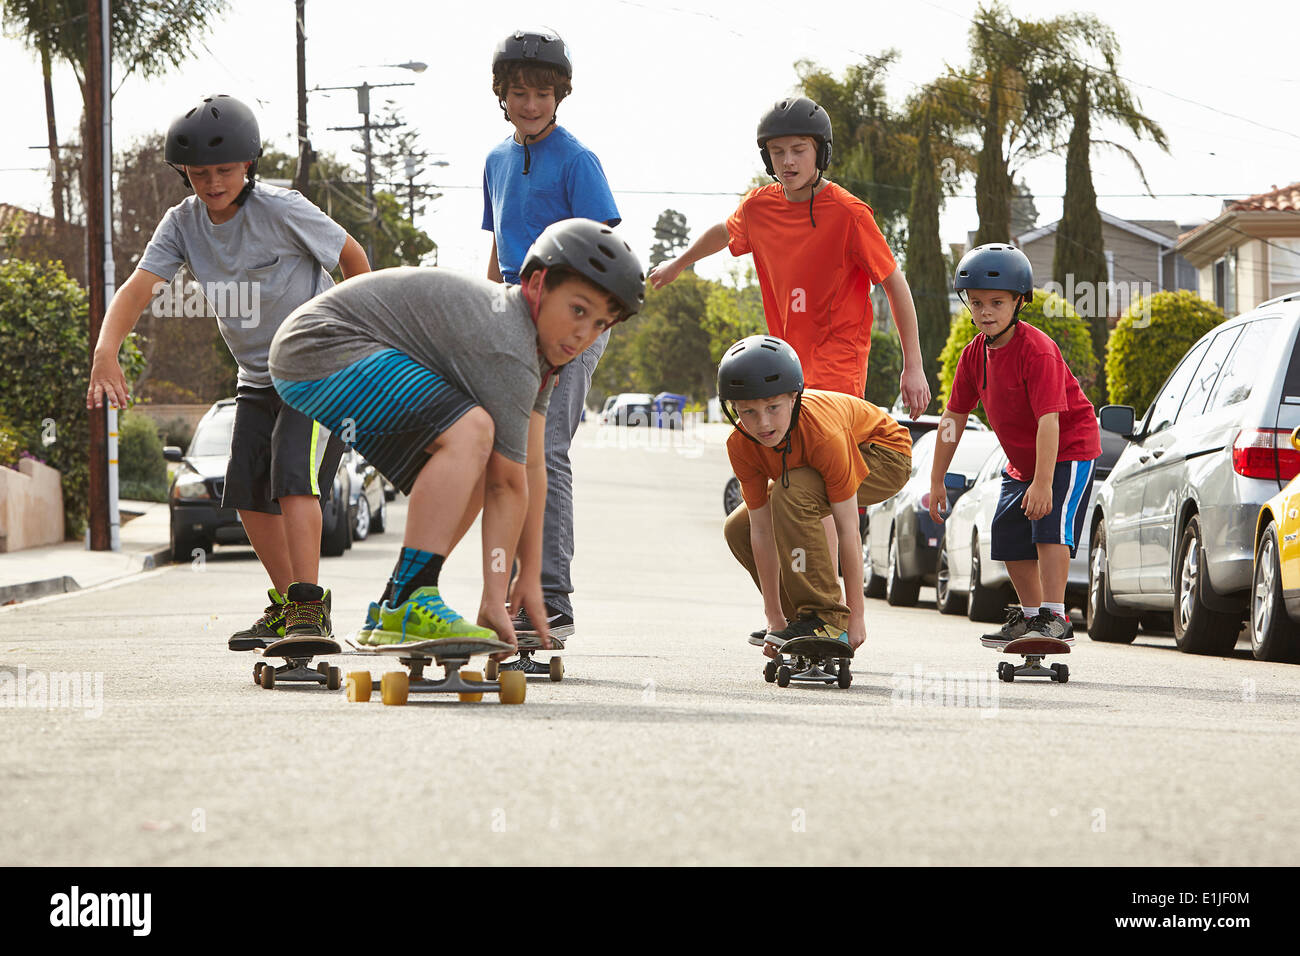 Boys skateboarding on road - Stock Image